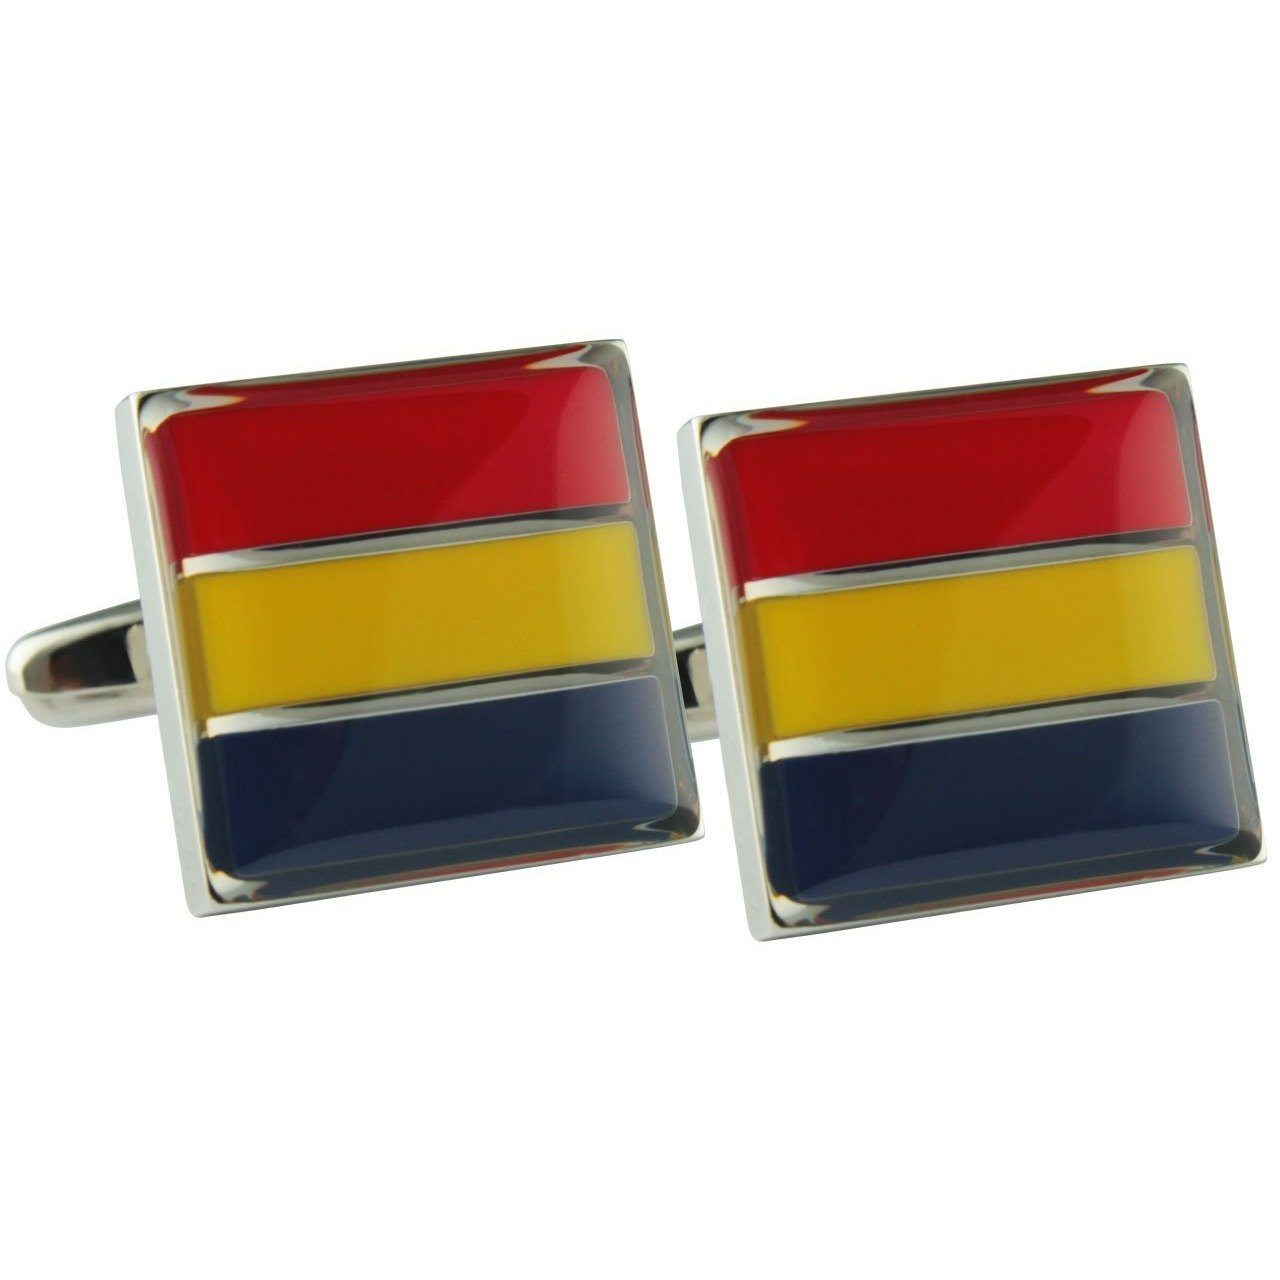 Colour Adelaide Crows AFL Cufflinks Novelty Cufflinks AFL Colour Adelaide Crows AFL Cufflinks